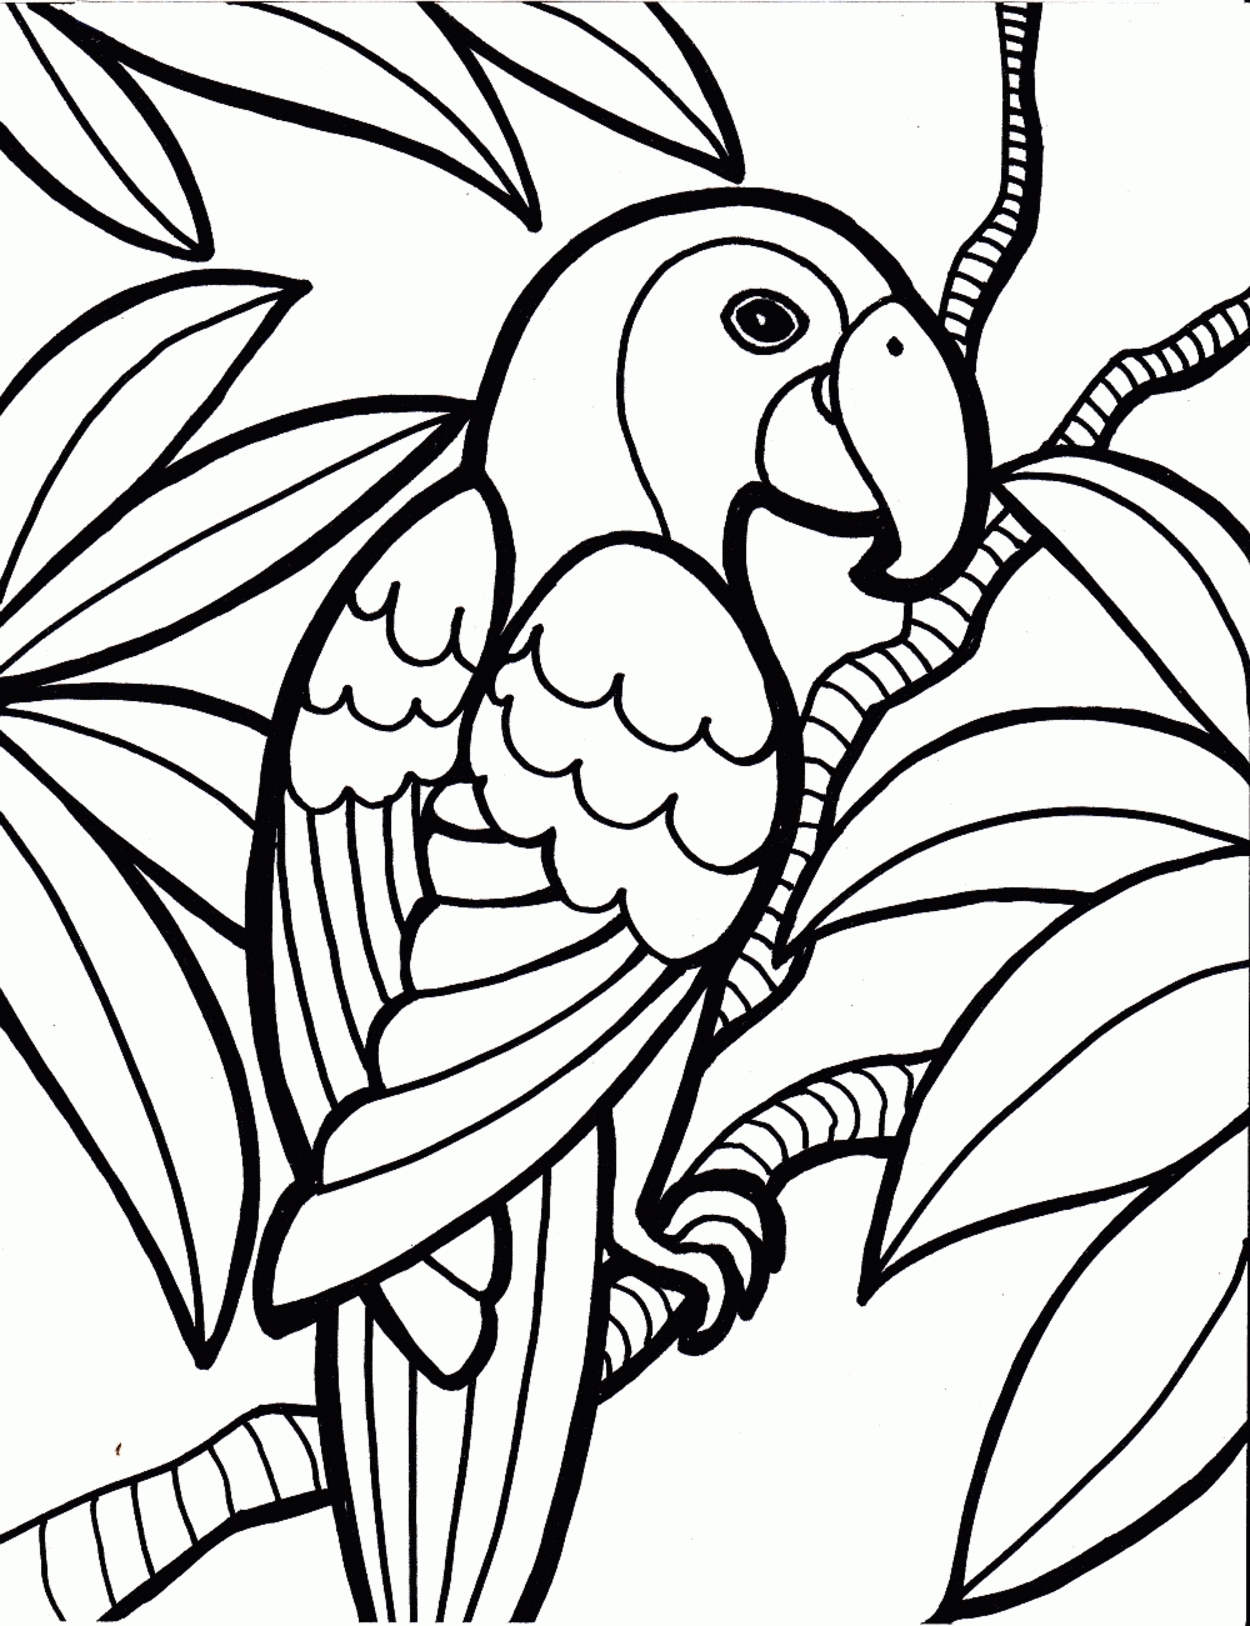 luau coloring pages - luau free coloring pages